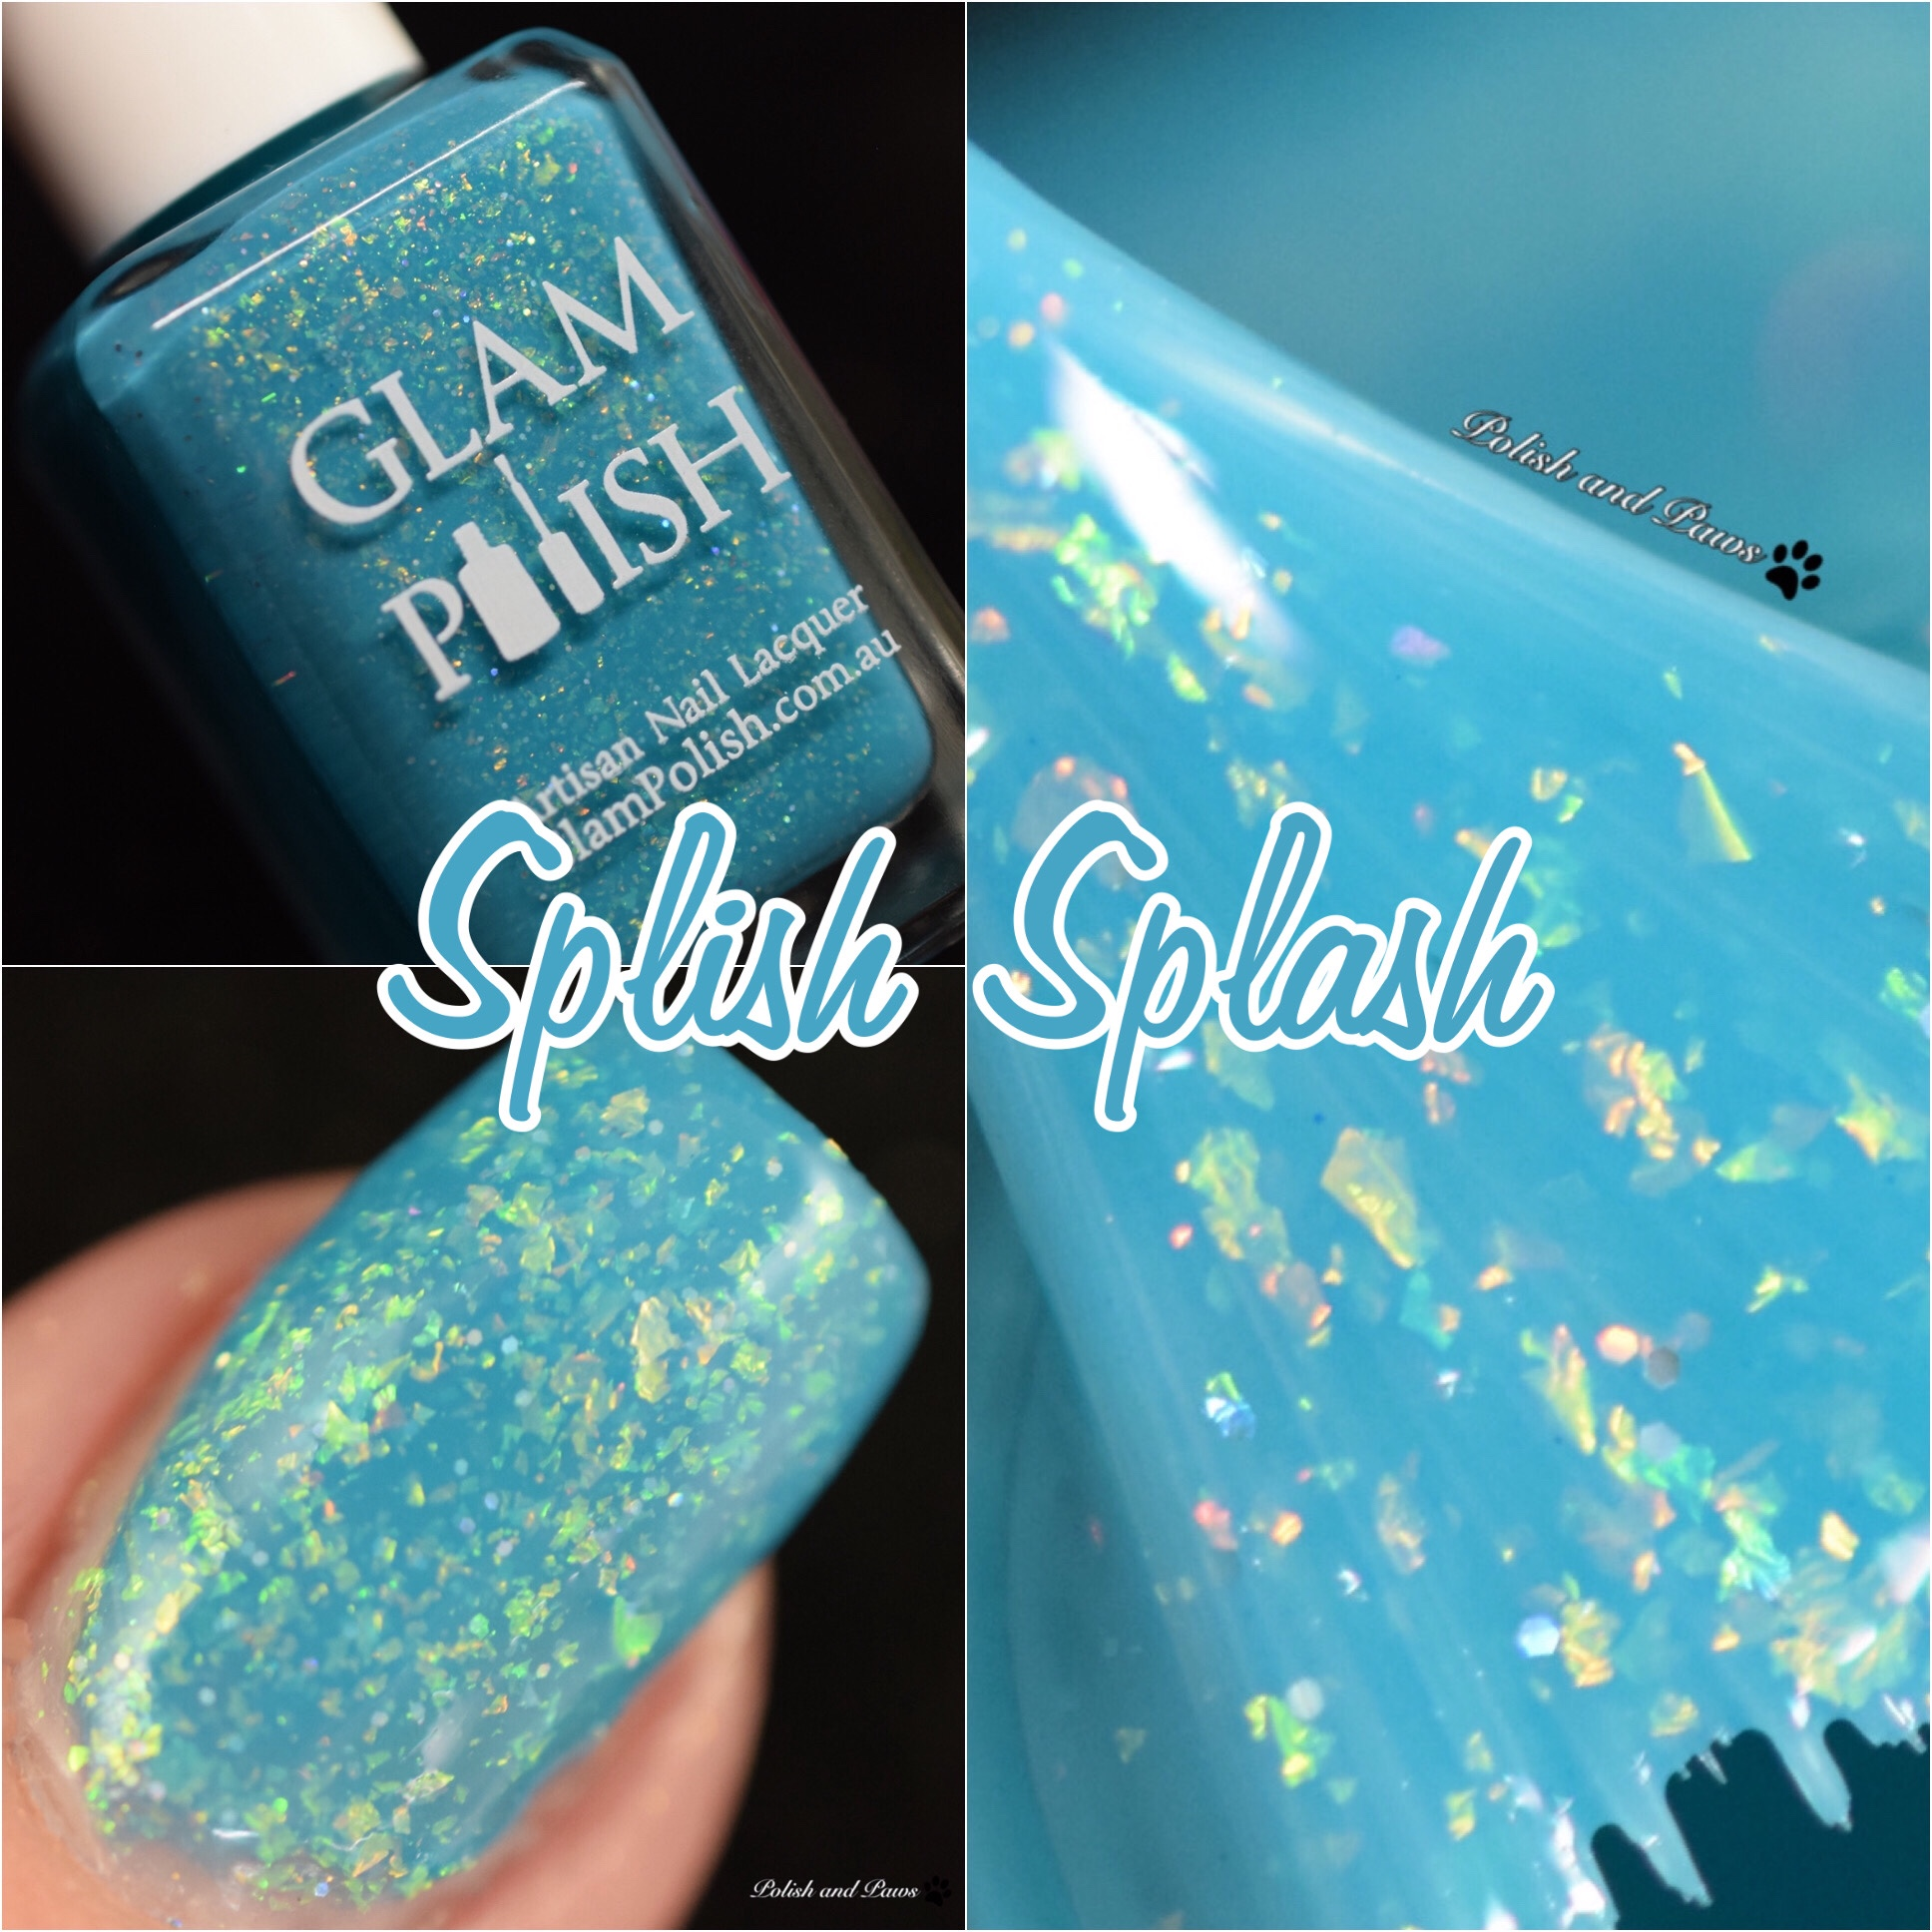 Glam Polish Splish Splash